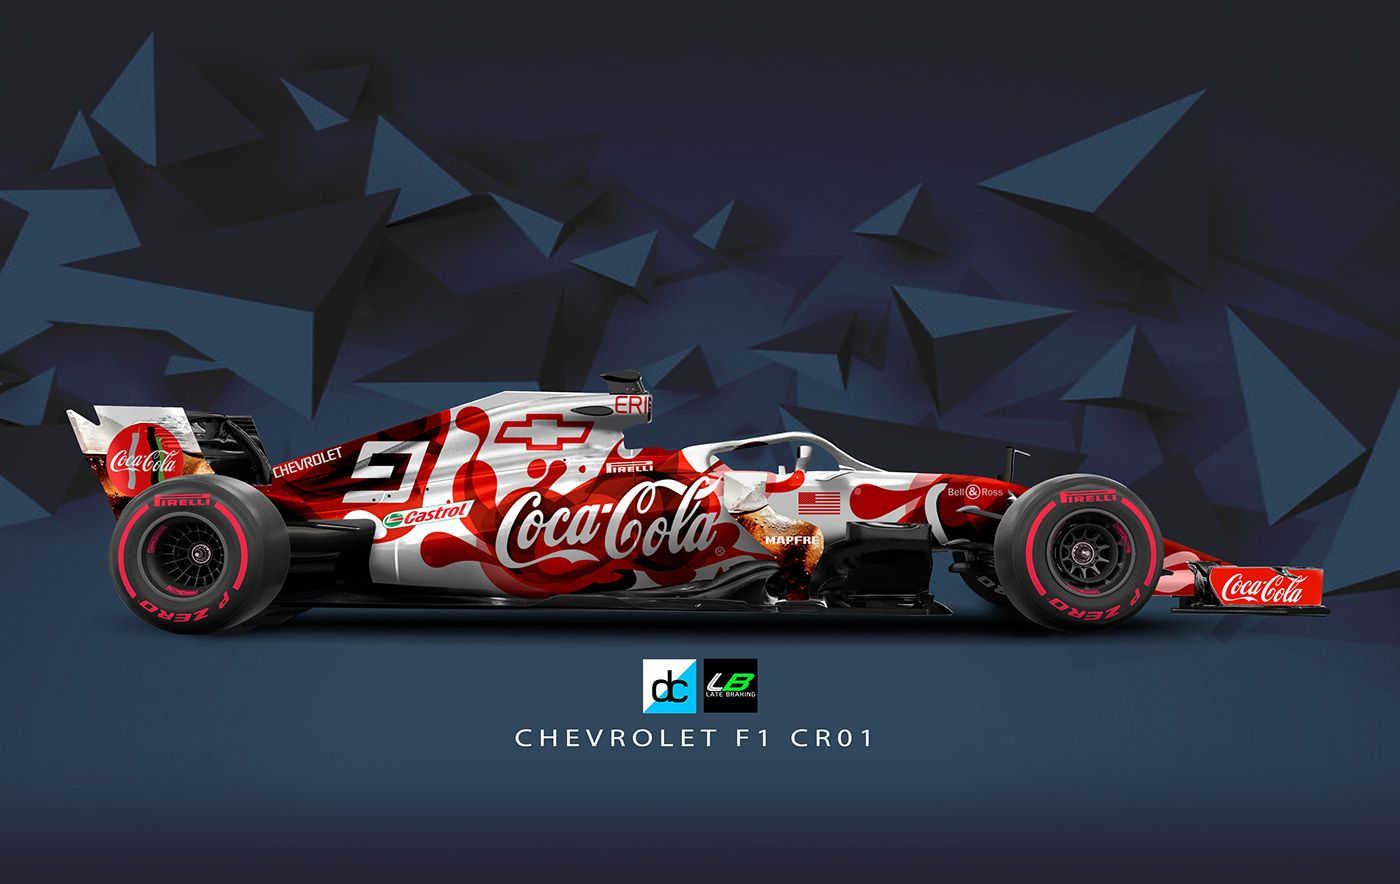 Chevrolet Racing F1 Concept Livery Late Braking On Behance Racing Nascar Race Cars Concept Cars